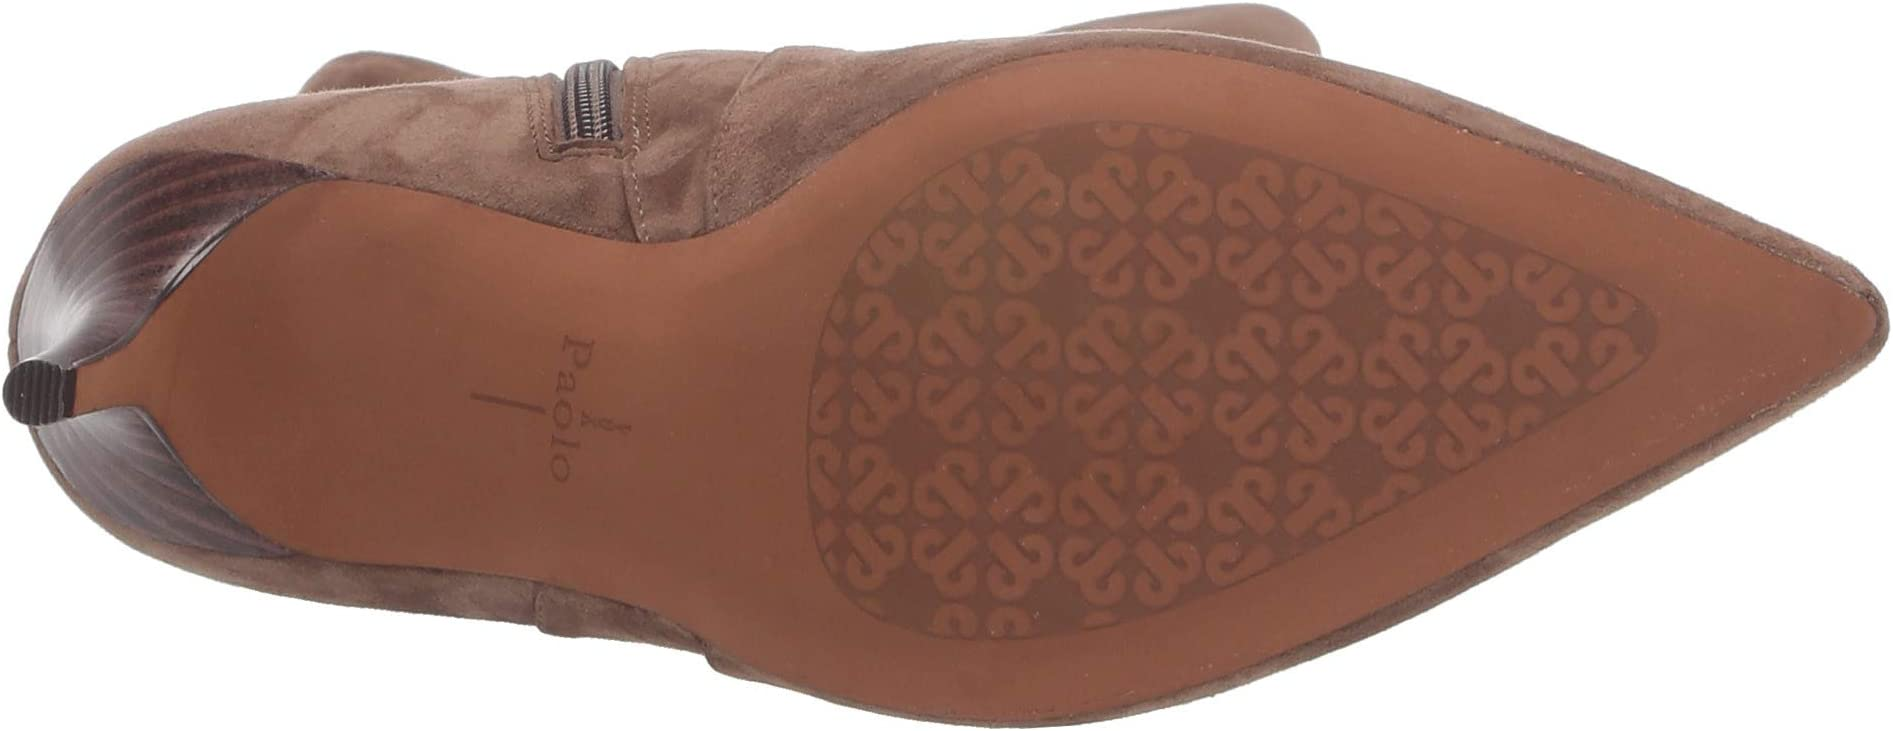 LINEA Paolo Perfect   Women's shoes   2020 Newest